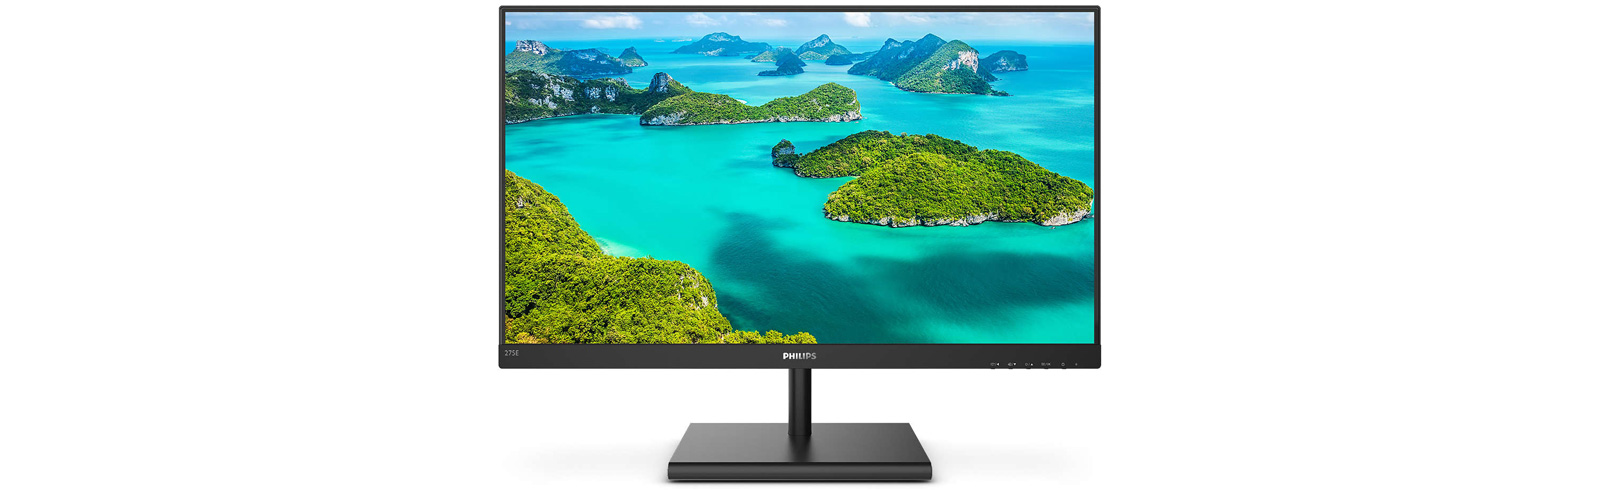 Philips 275E1S - a new 27-inch WQHD monitor with 75Hz refresh rate